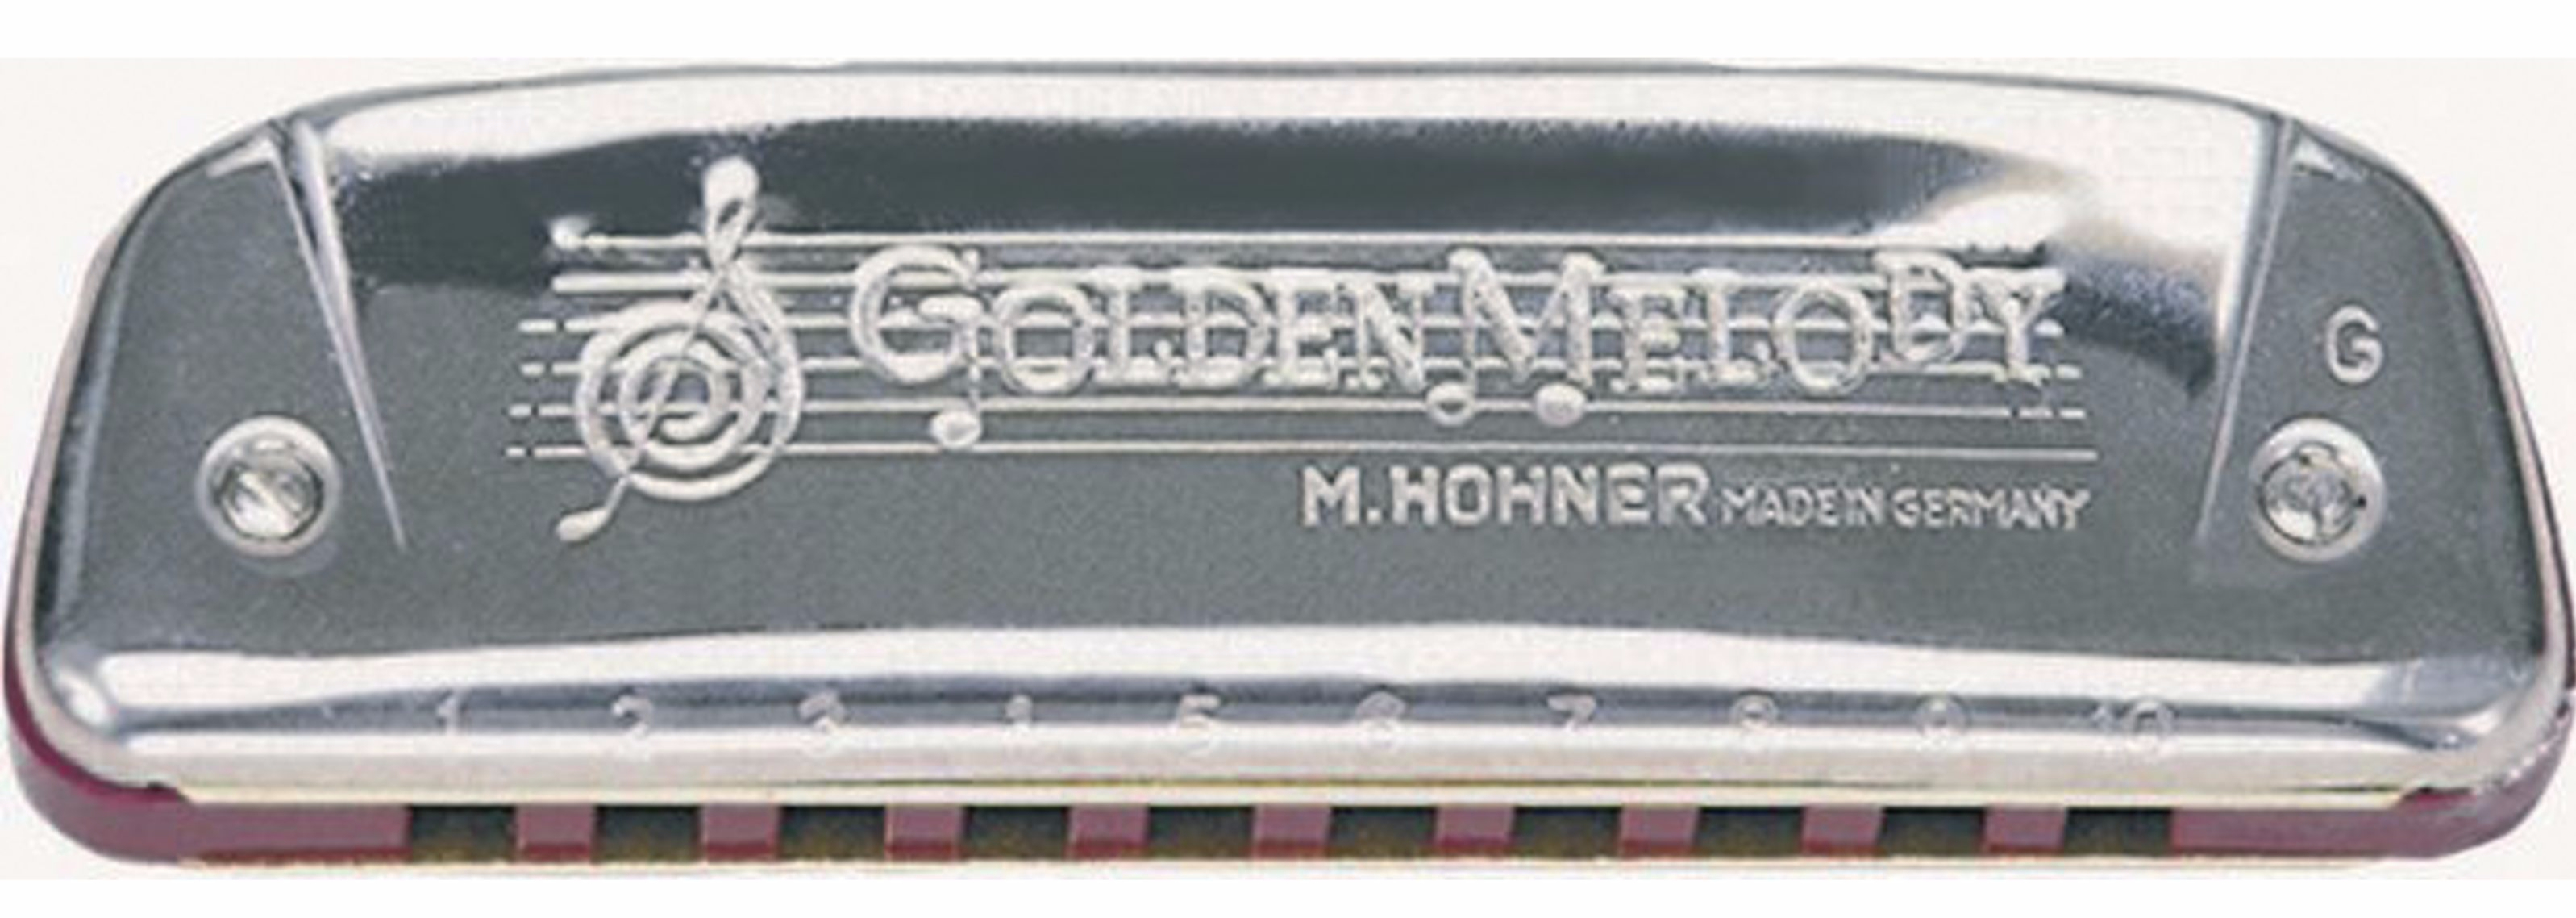 HOHNER Golden Melodie A